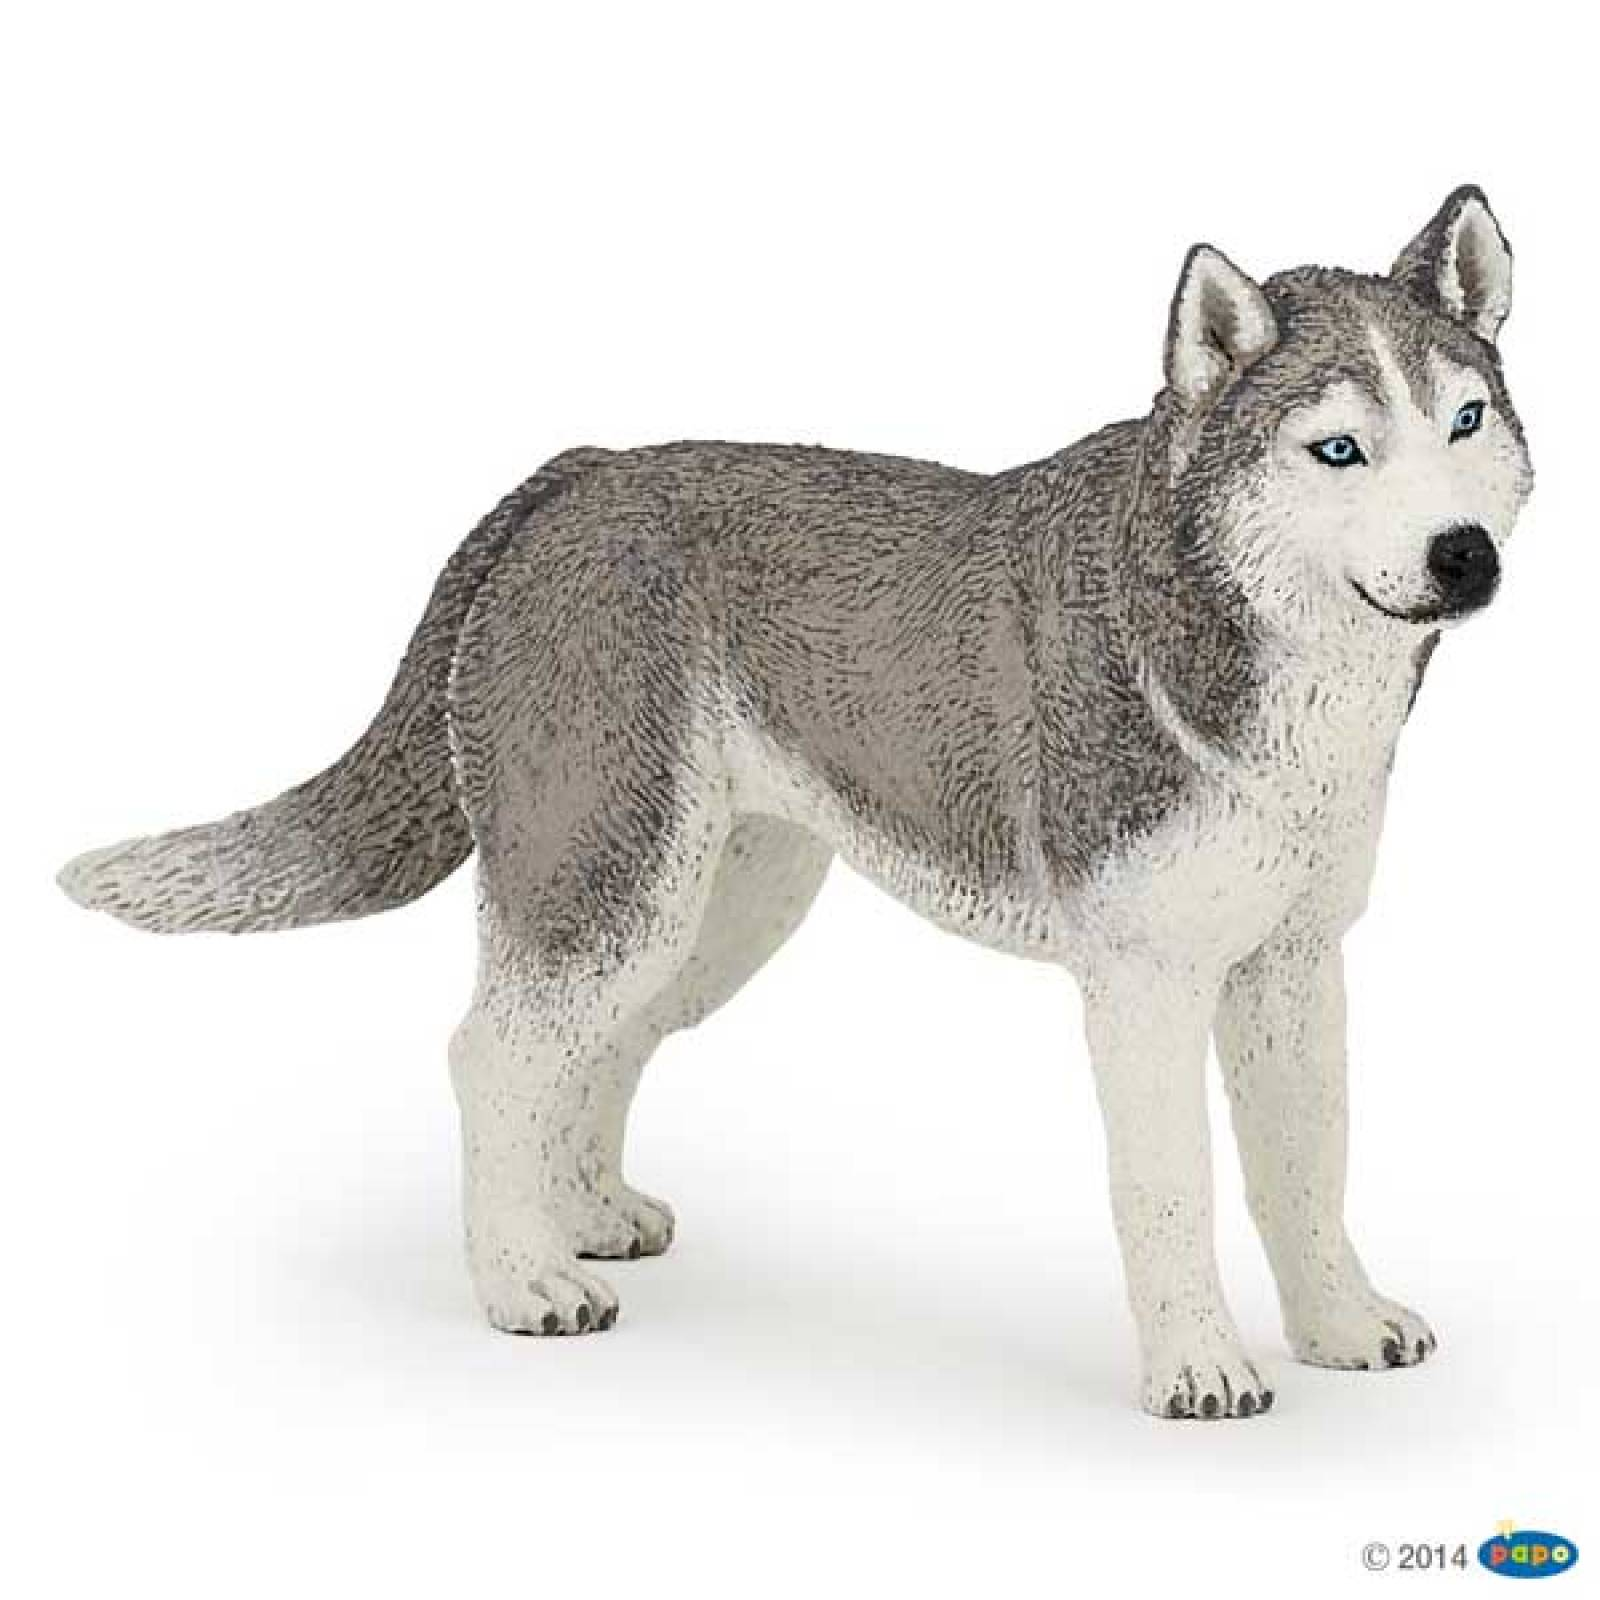 Siberian Husky Dog PAPO ANIMAL